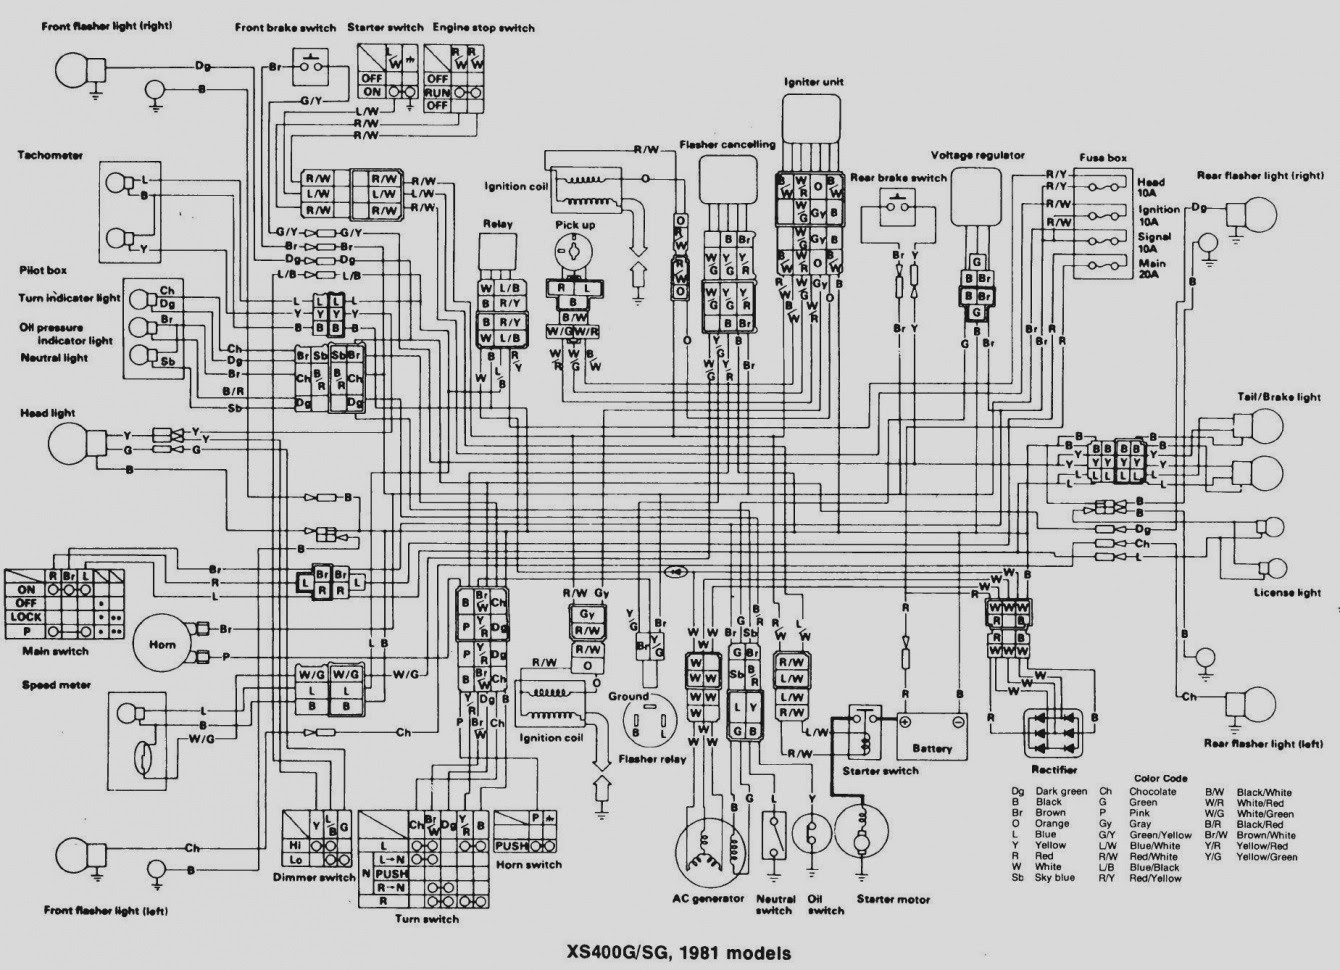 [DIAGRAM] Wiring Diagram With Schematics For A 1998 400